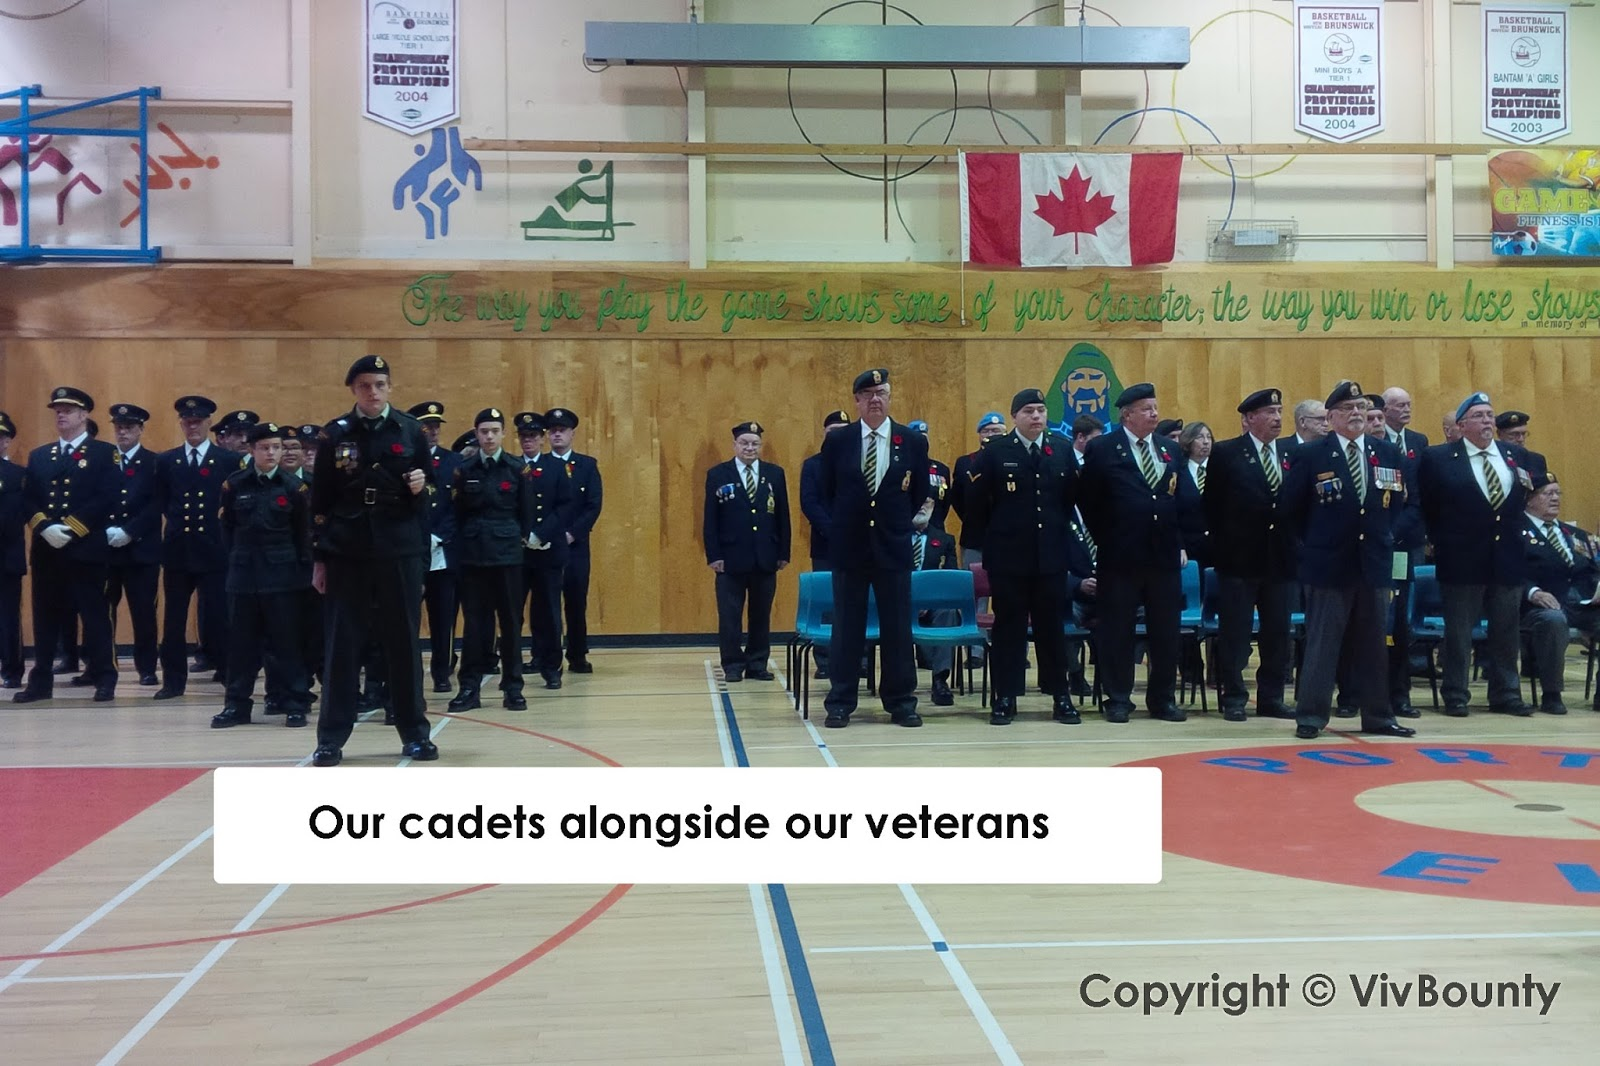 Cadets alongside our veterans, VivBounty